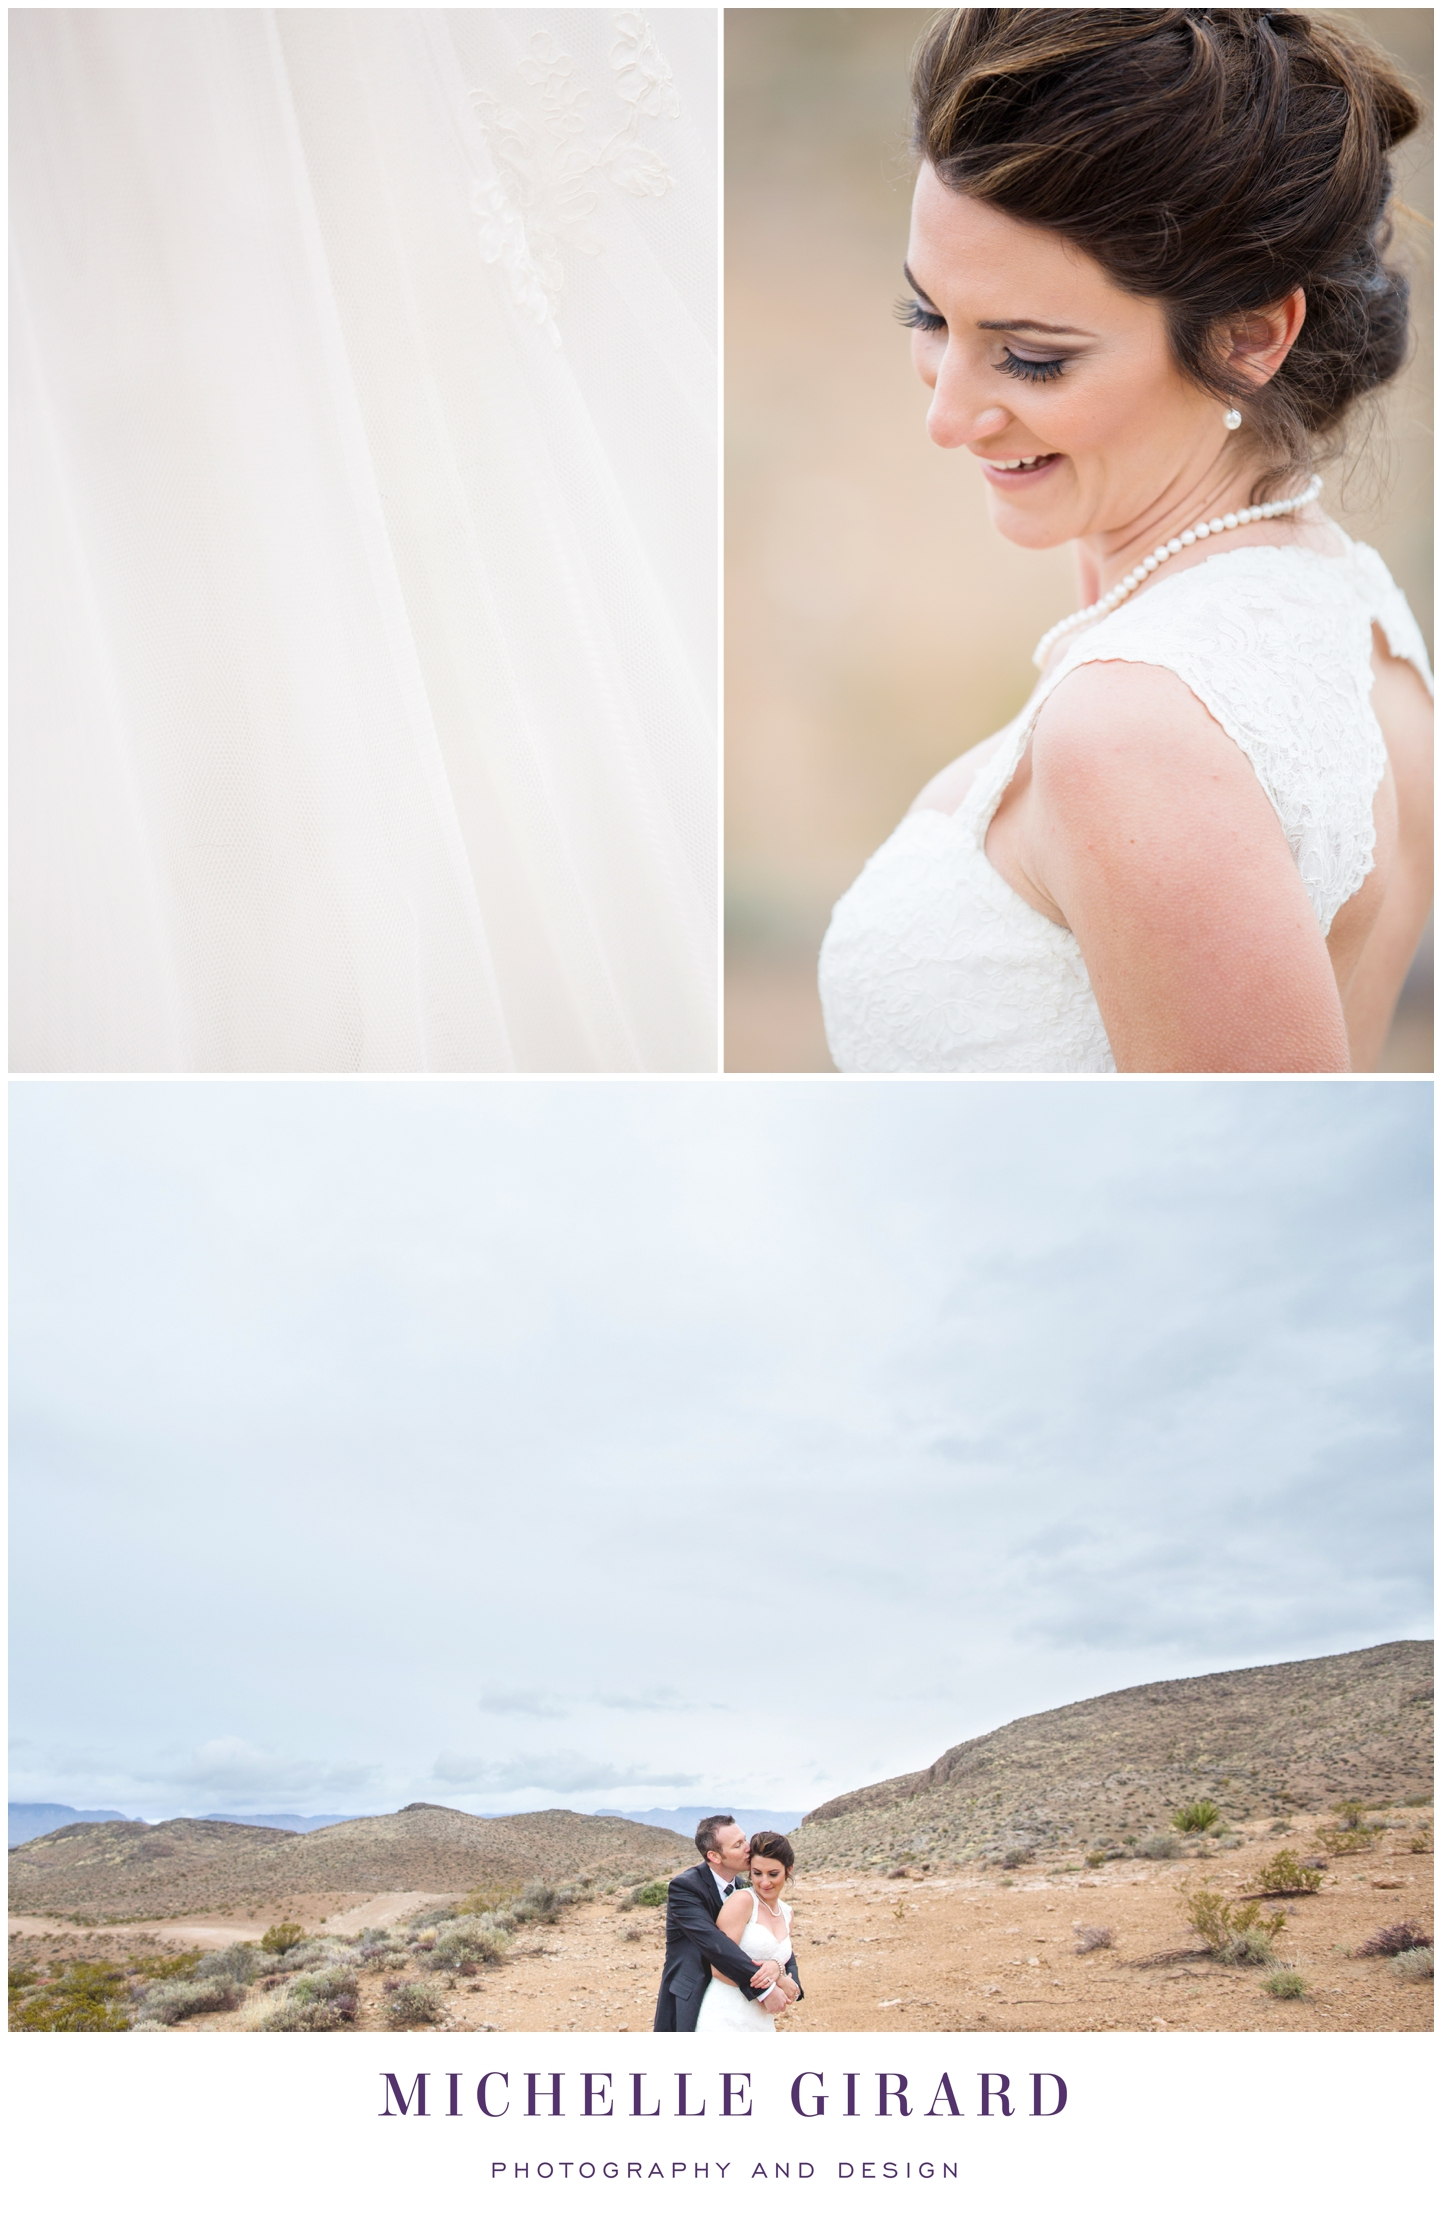 las-vegas-desert-wedding-bride-groom-photography-nevada-michelle-girard-17.jpg